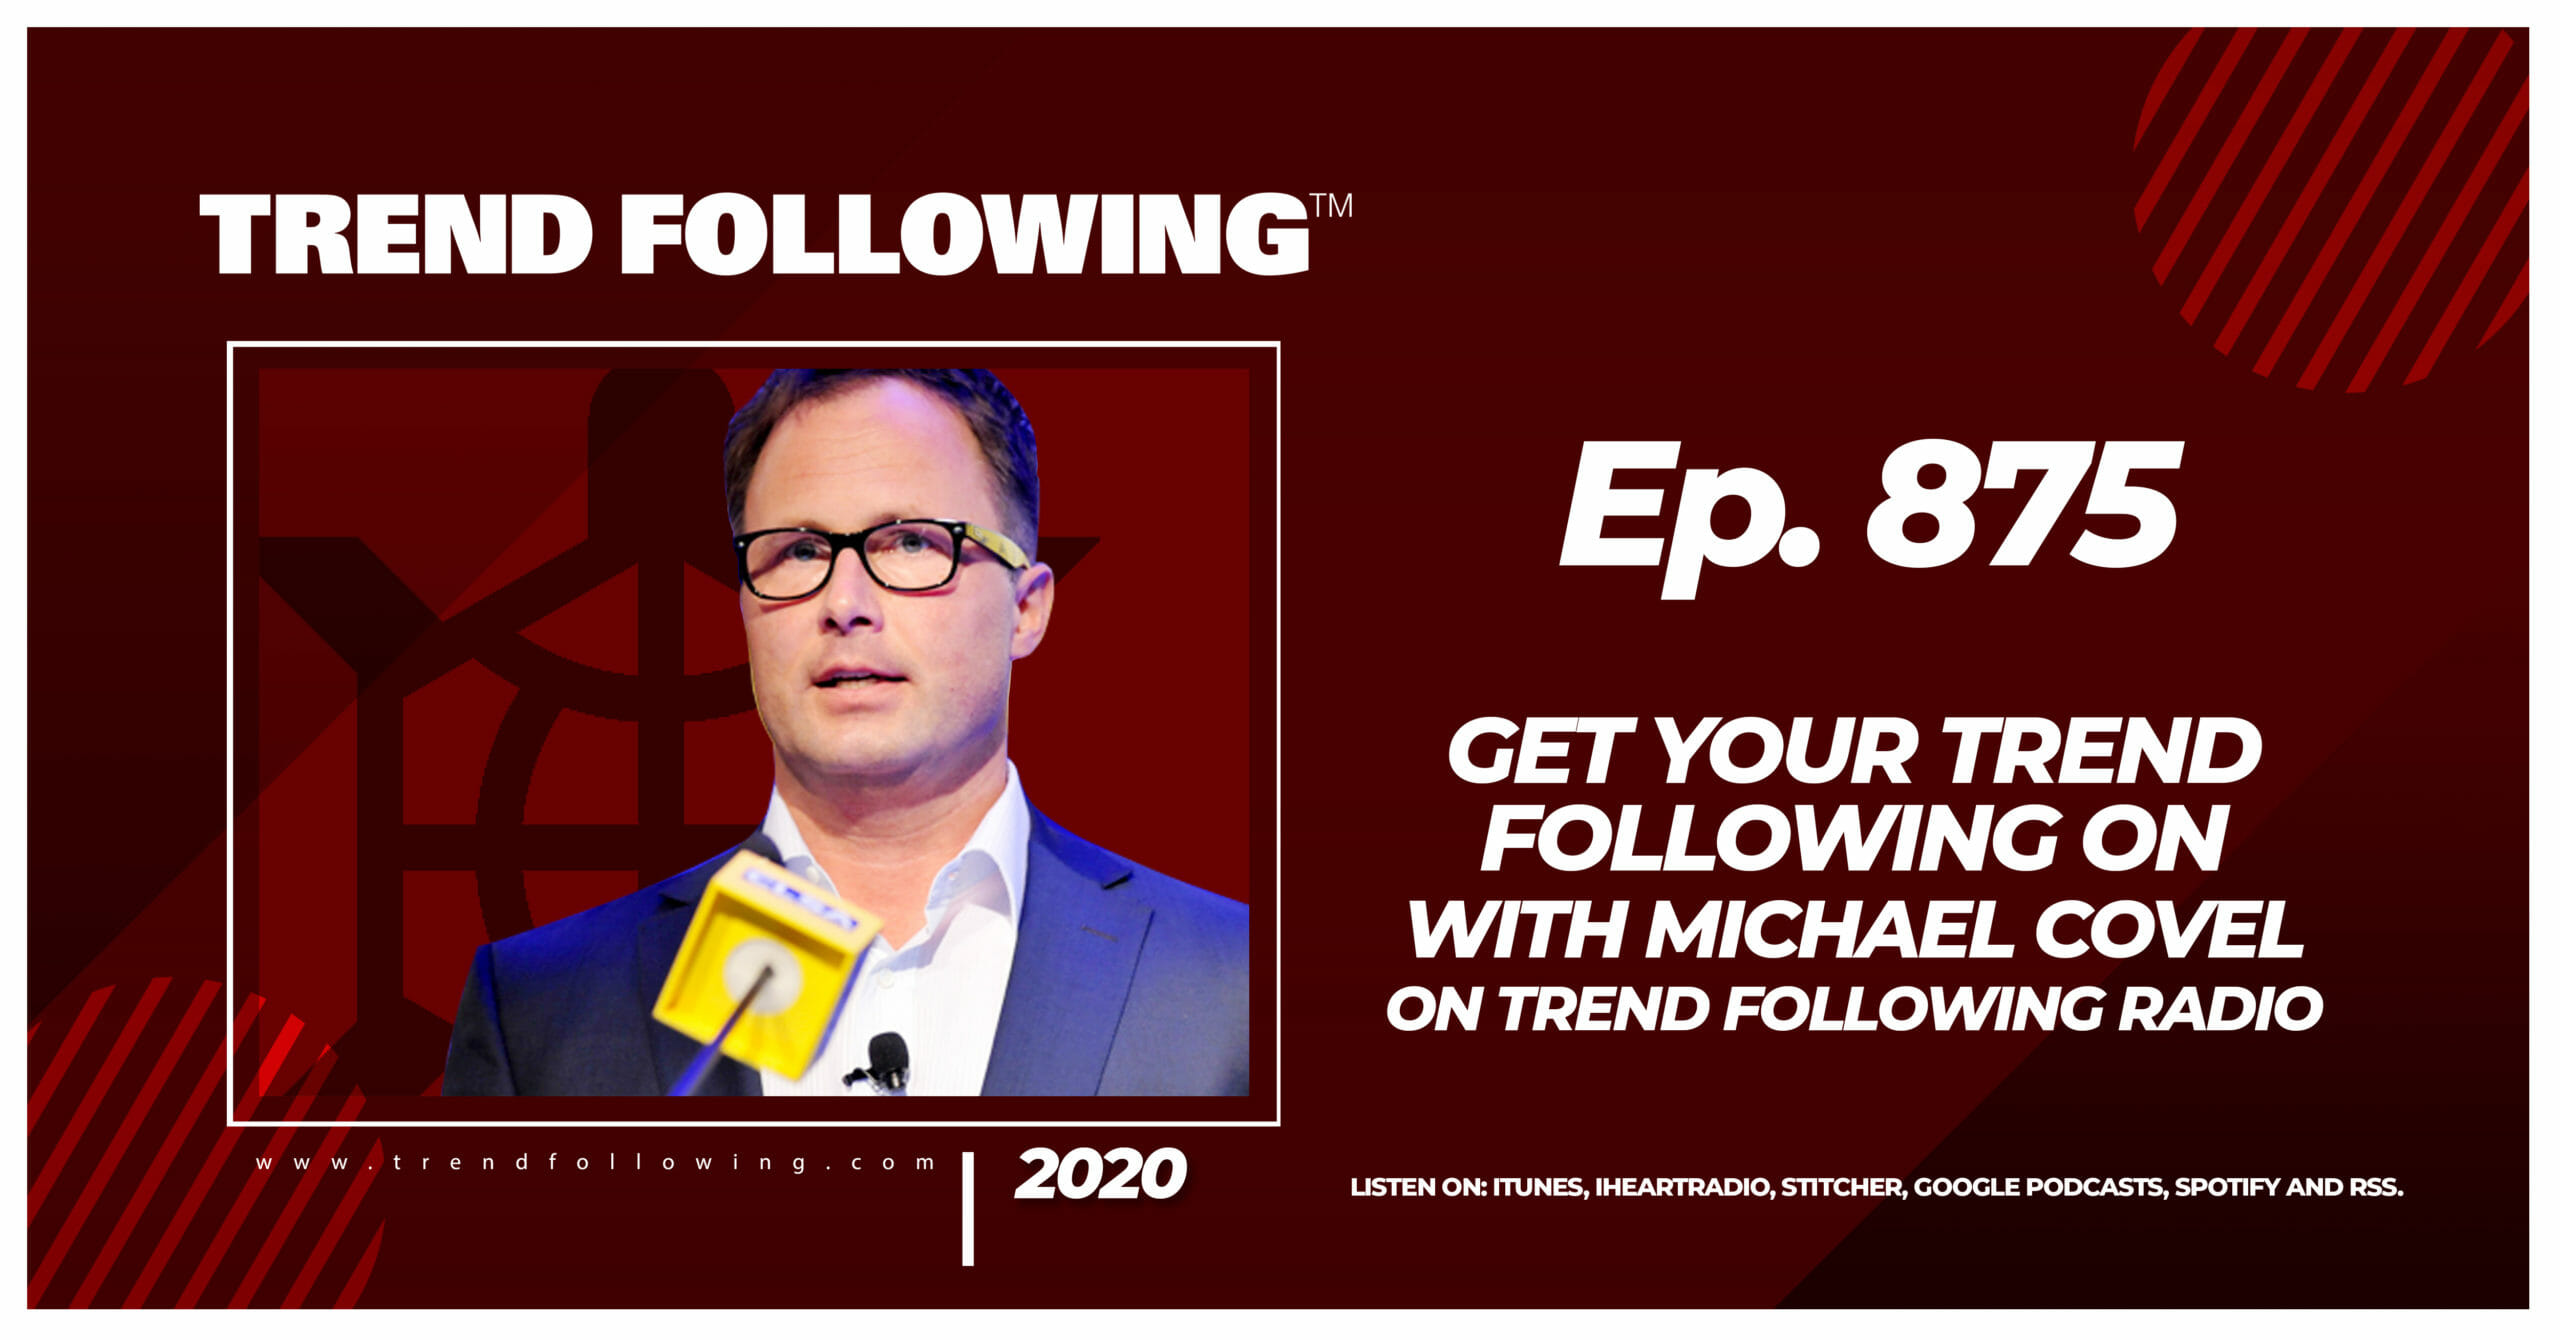 Get Your Trend Following On with Michael Covel on Trend Following Radio